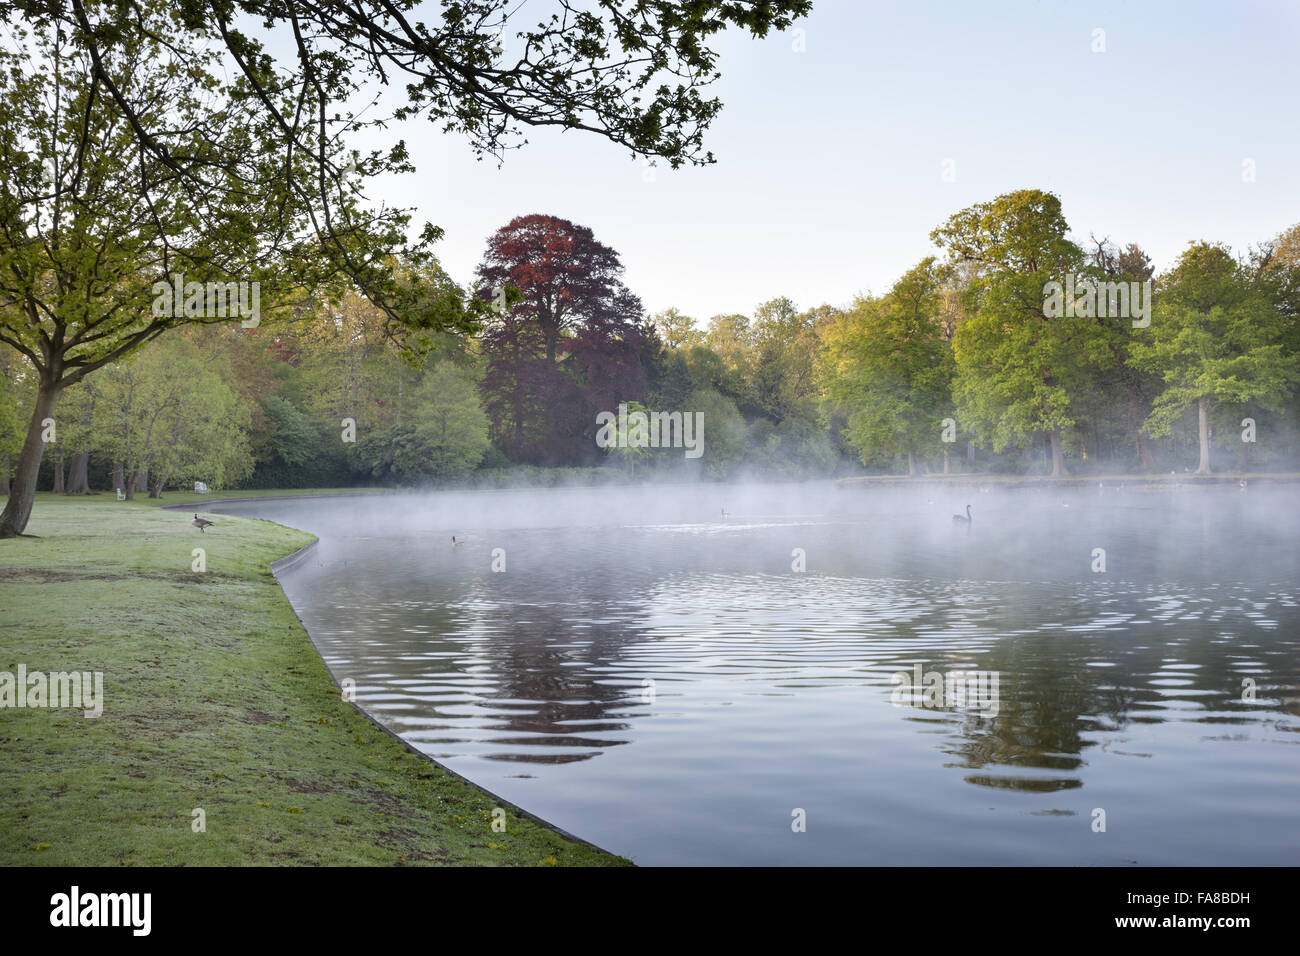 Mist on the lake at claremont landscape garden surrey the lake as mist on the lake at claremont landscape garden surrey the lake as planned by bridgeman in 1715 was circular the present irregular shape was created workwithnaturefo